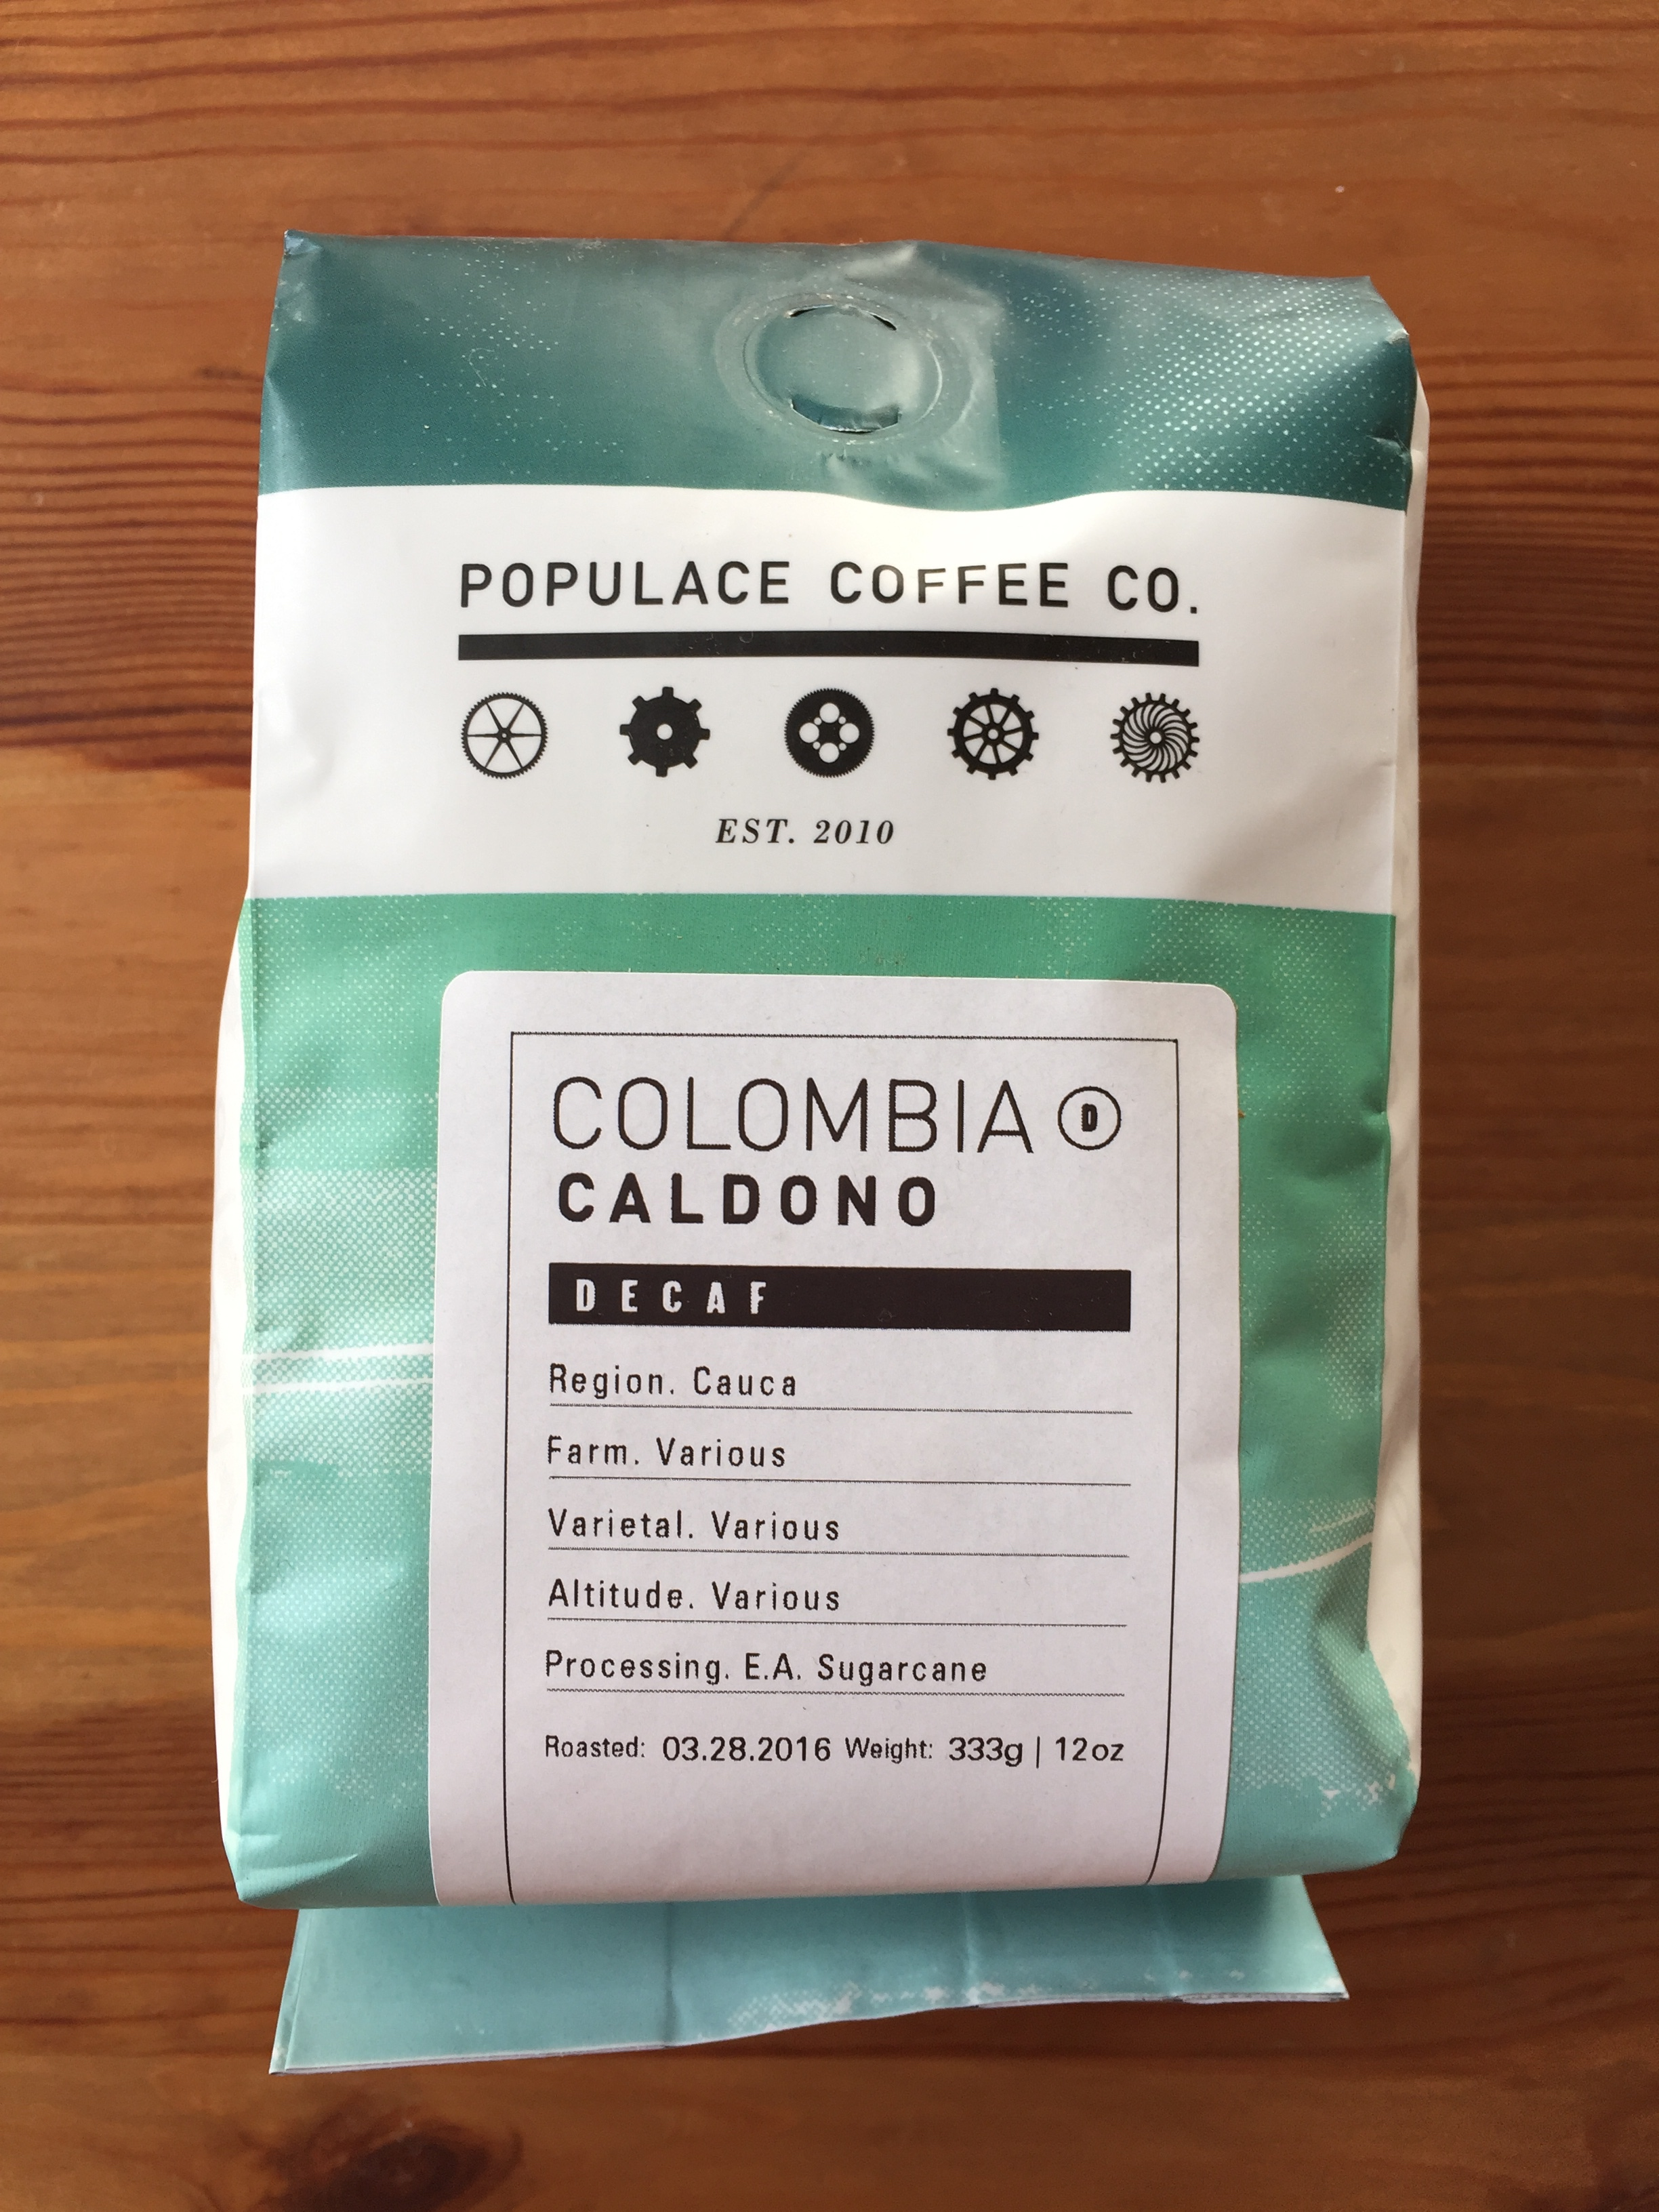 Populace Coffee - Decaf Colombia Caldono